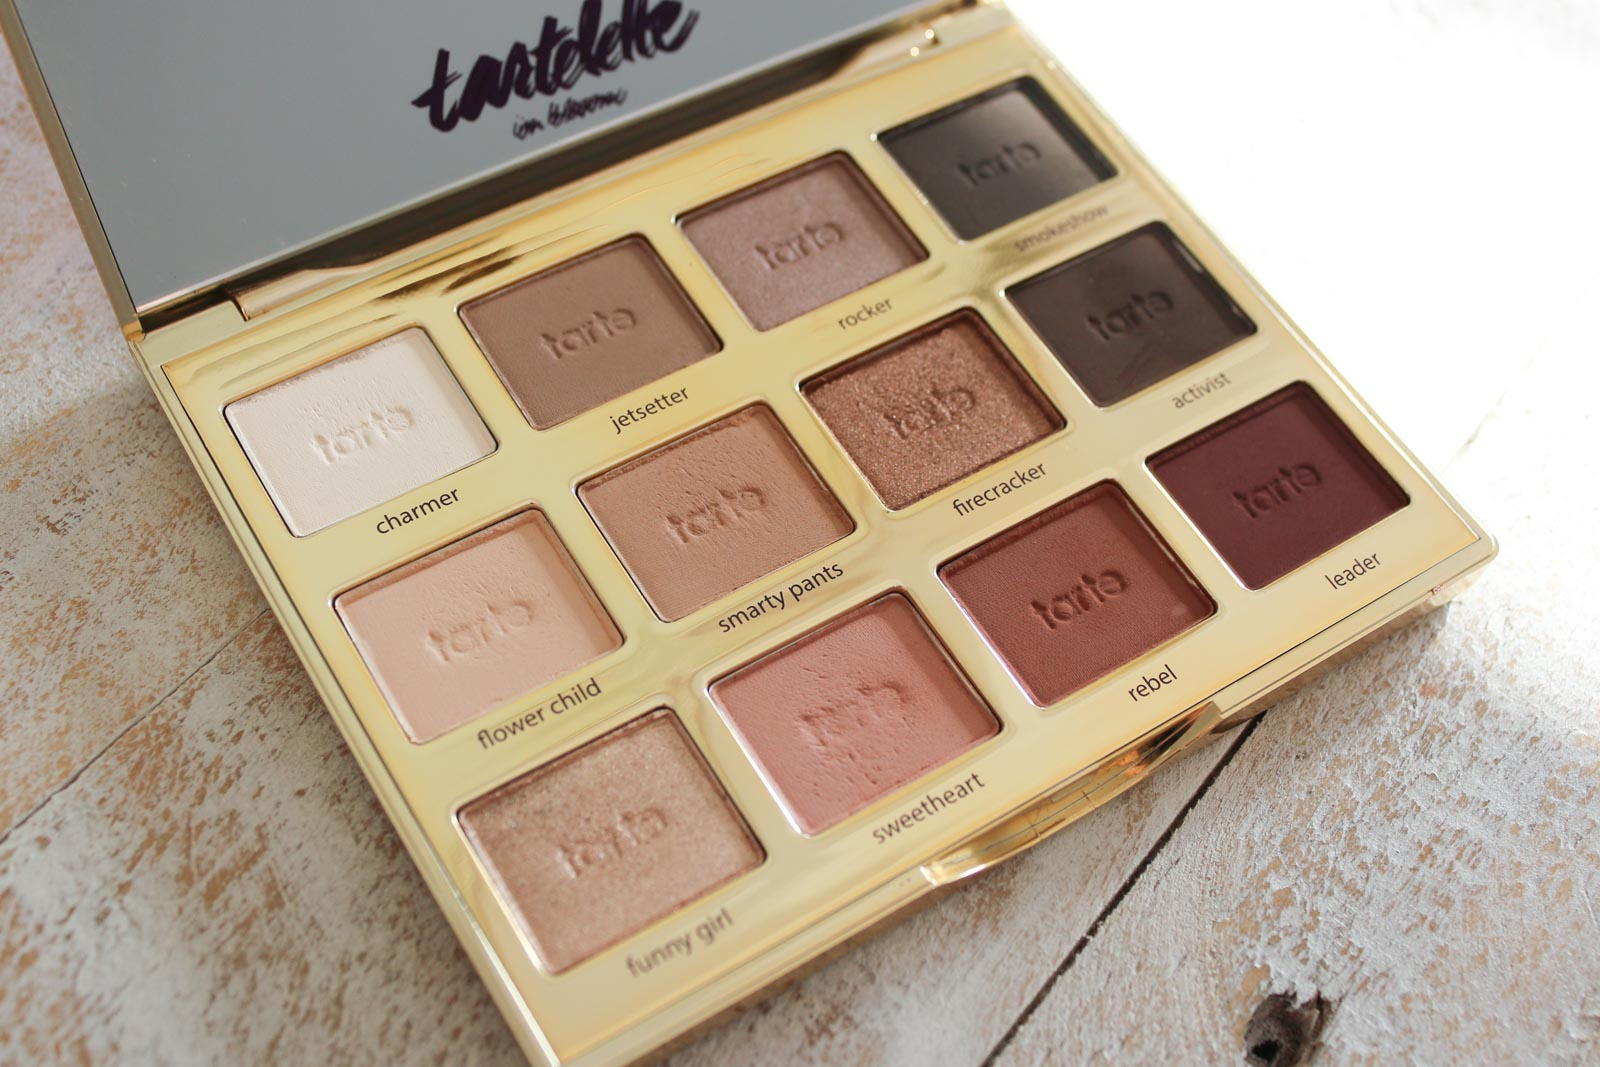 Tarte Tartelette In Bloom Palette (3).JPG